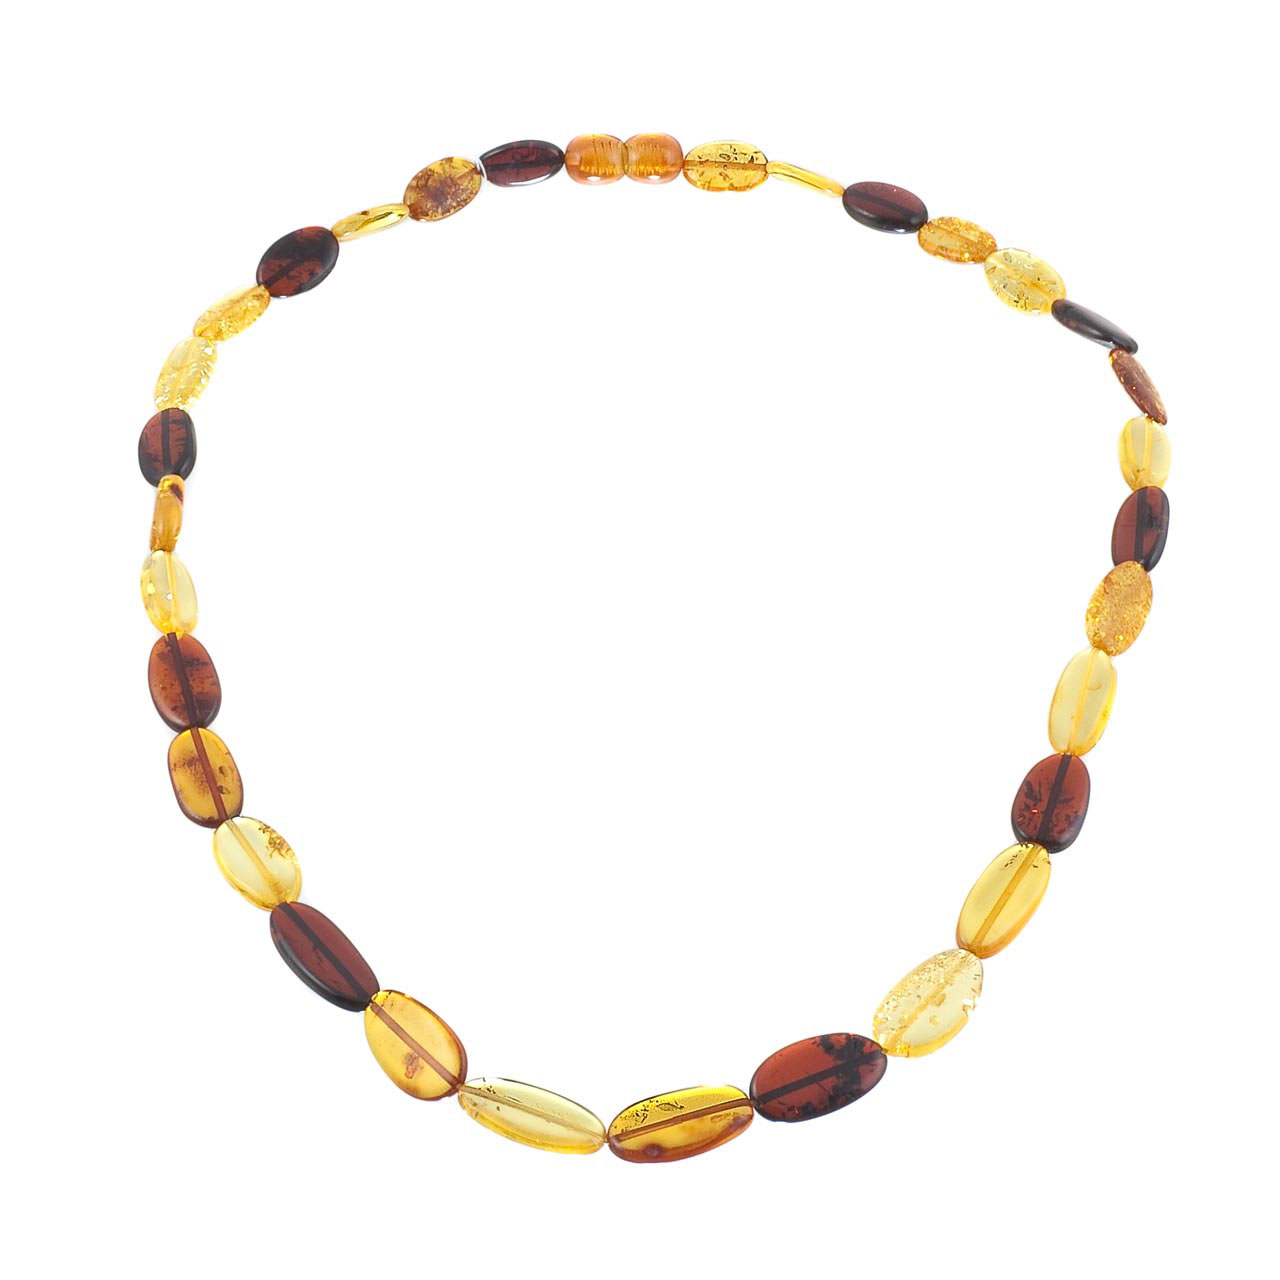 Oval Amber Beads